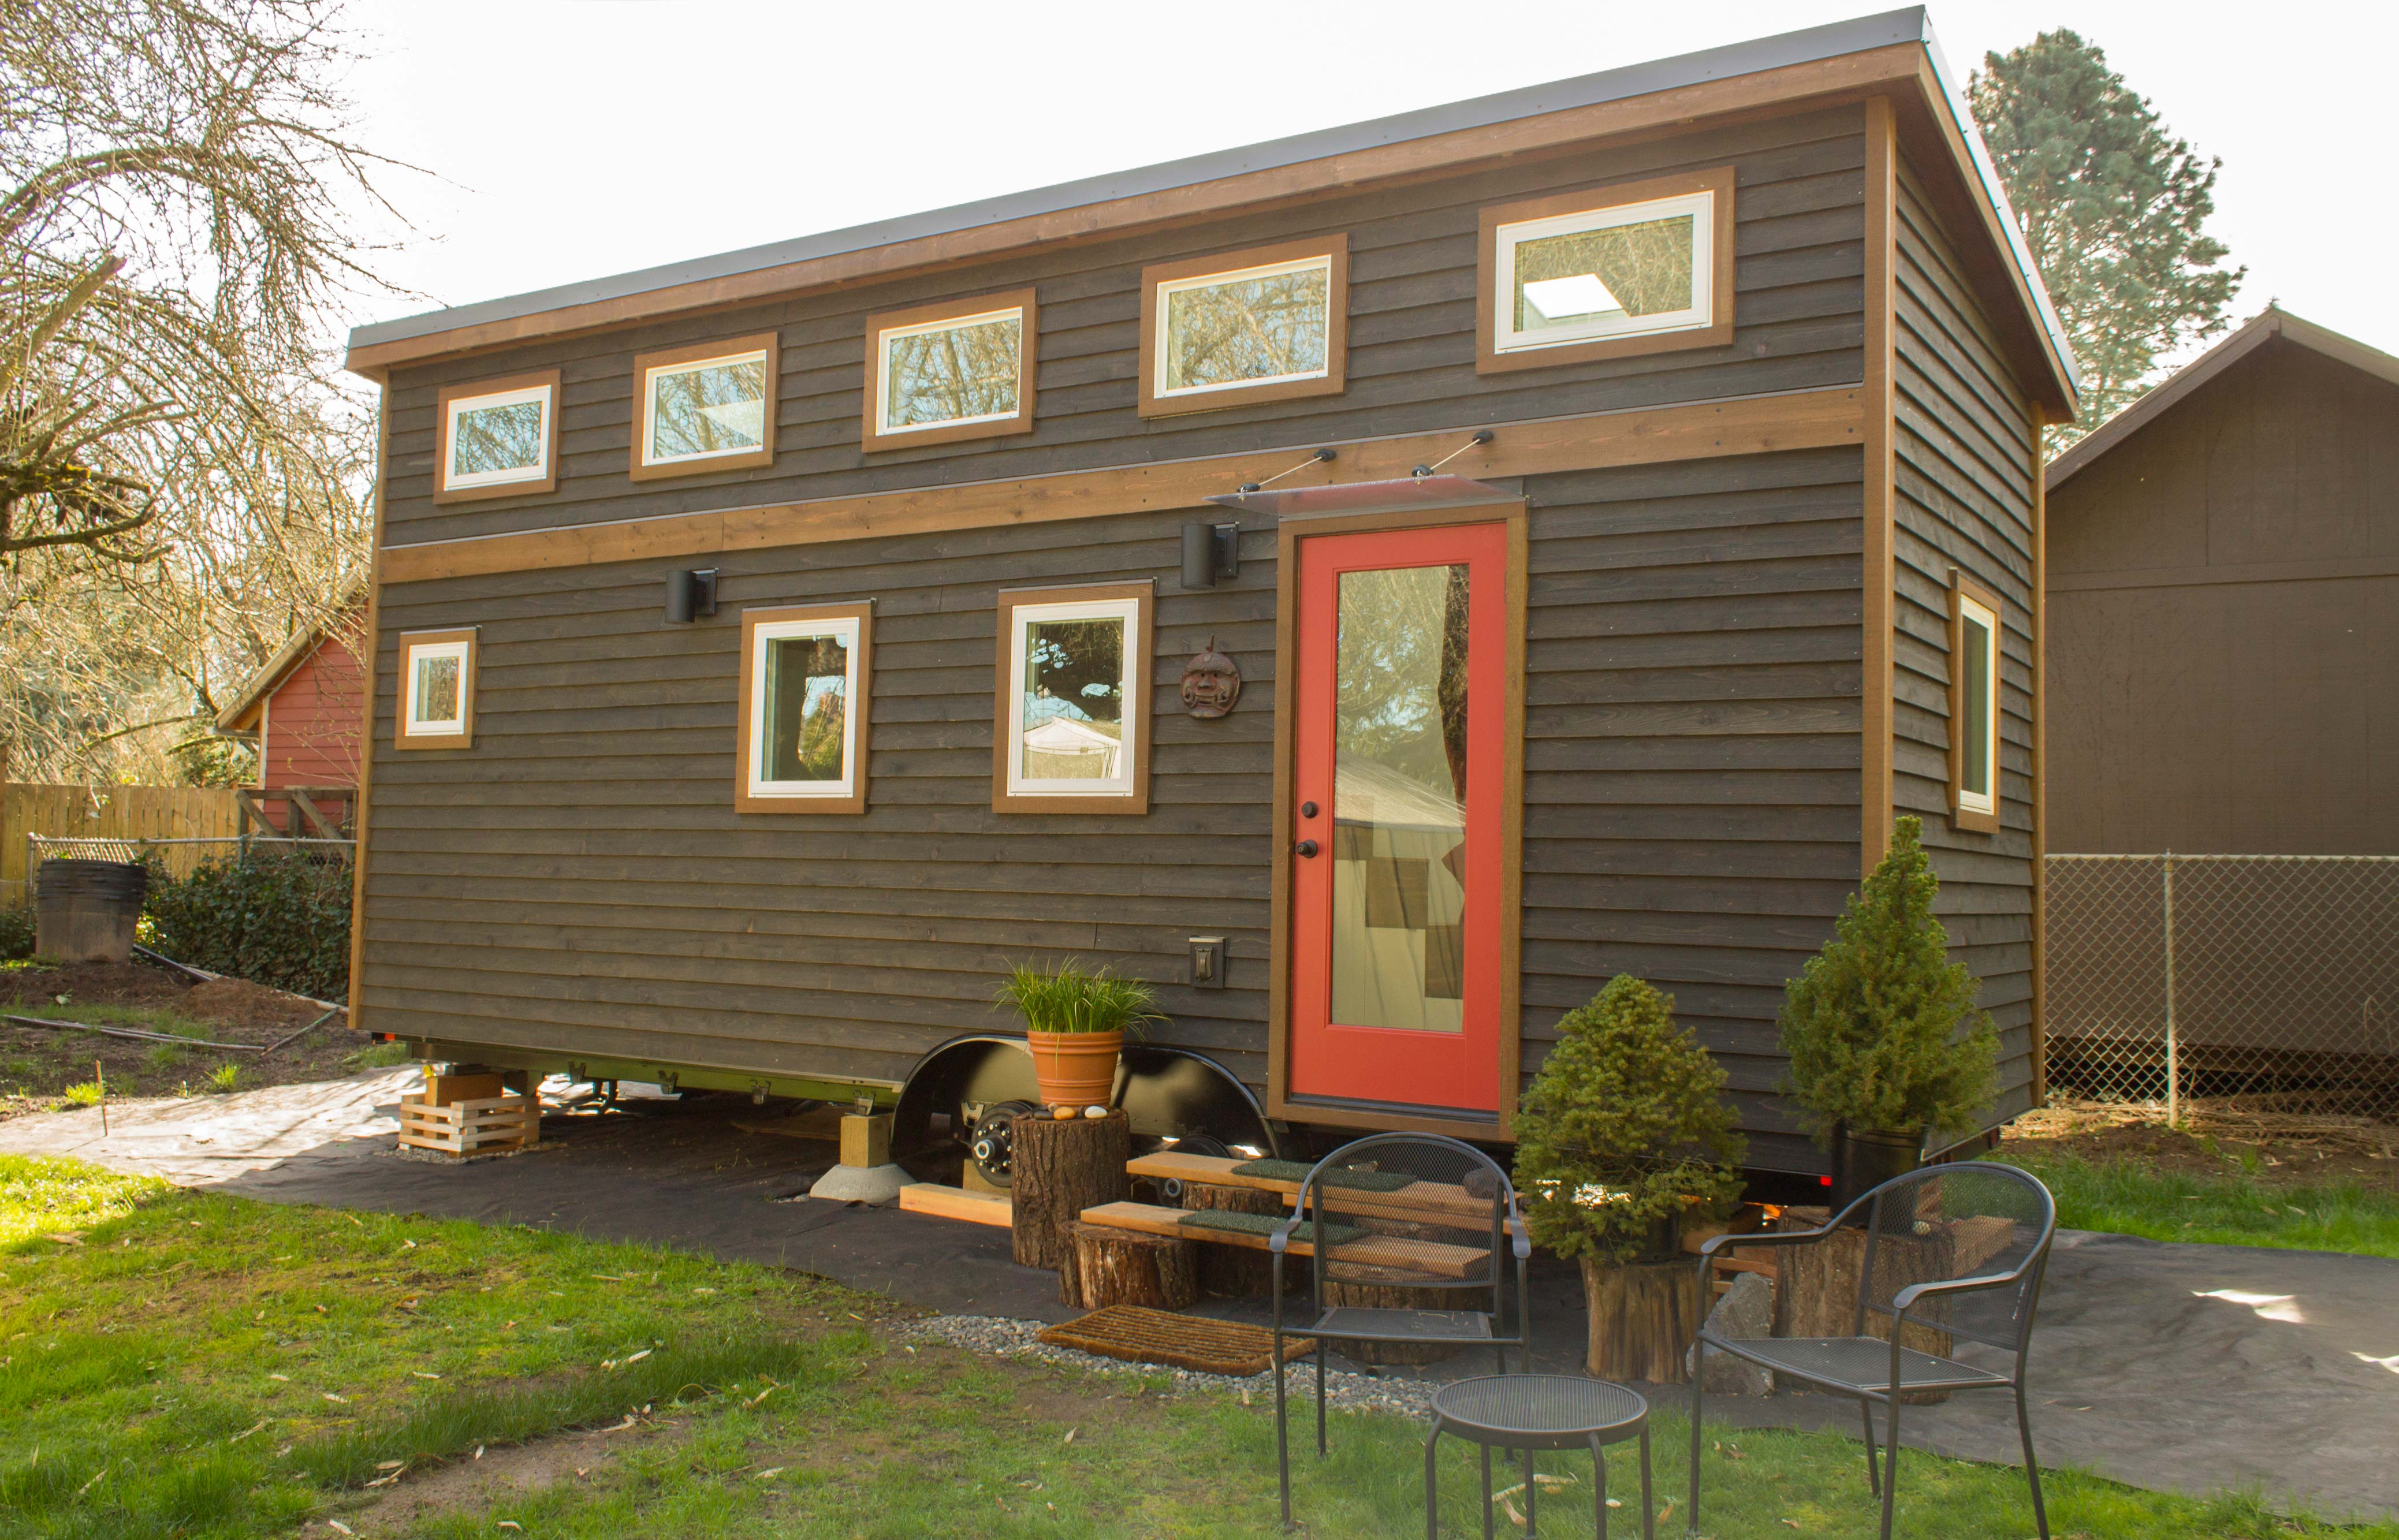 PAD Tiny Houses The Hikari Box House A Modern House Design By Shelter Wise  Everyone Wants To Know How Much Does A Tiny House Cost